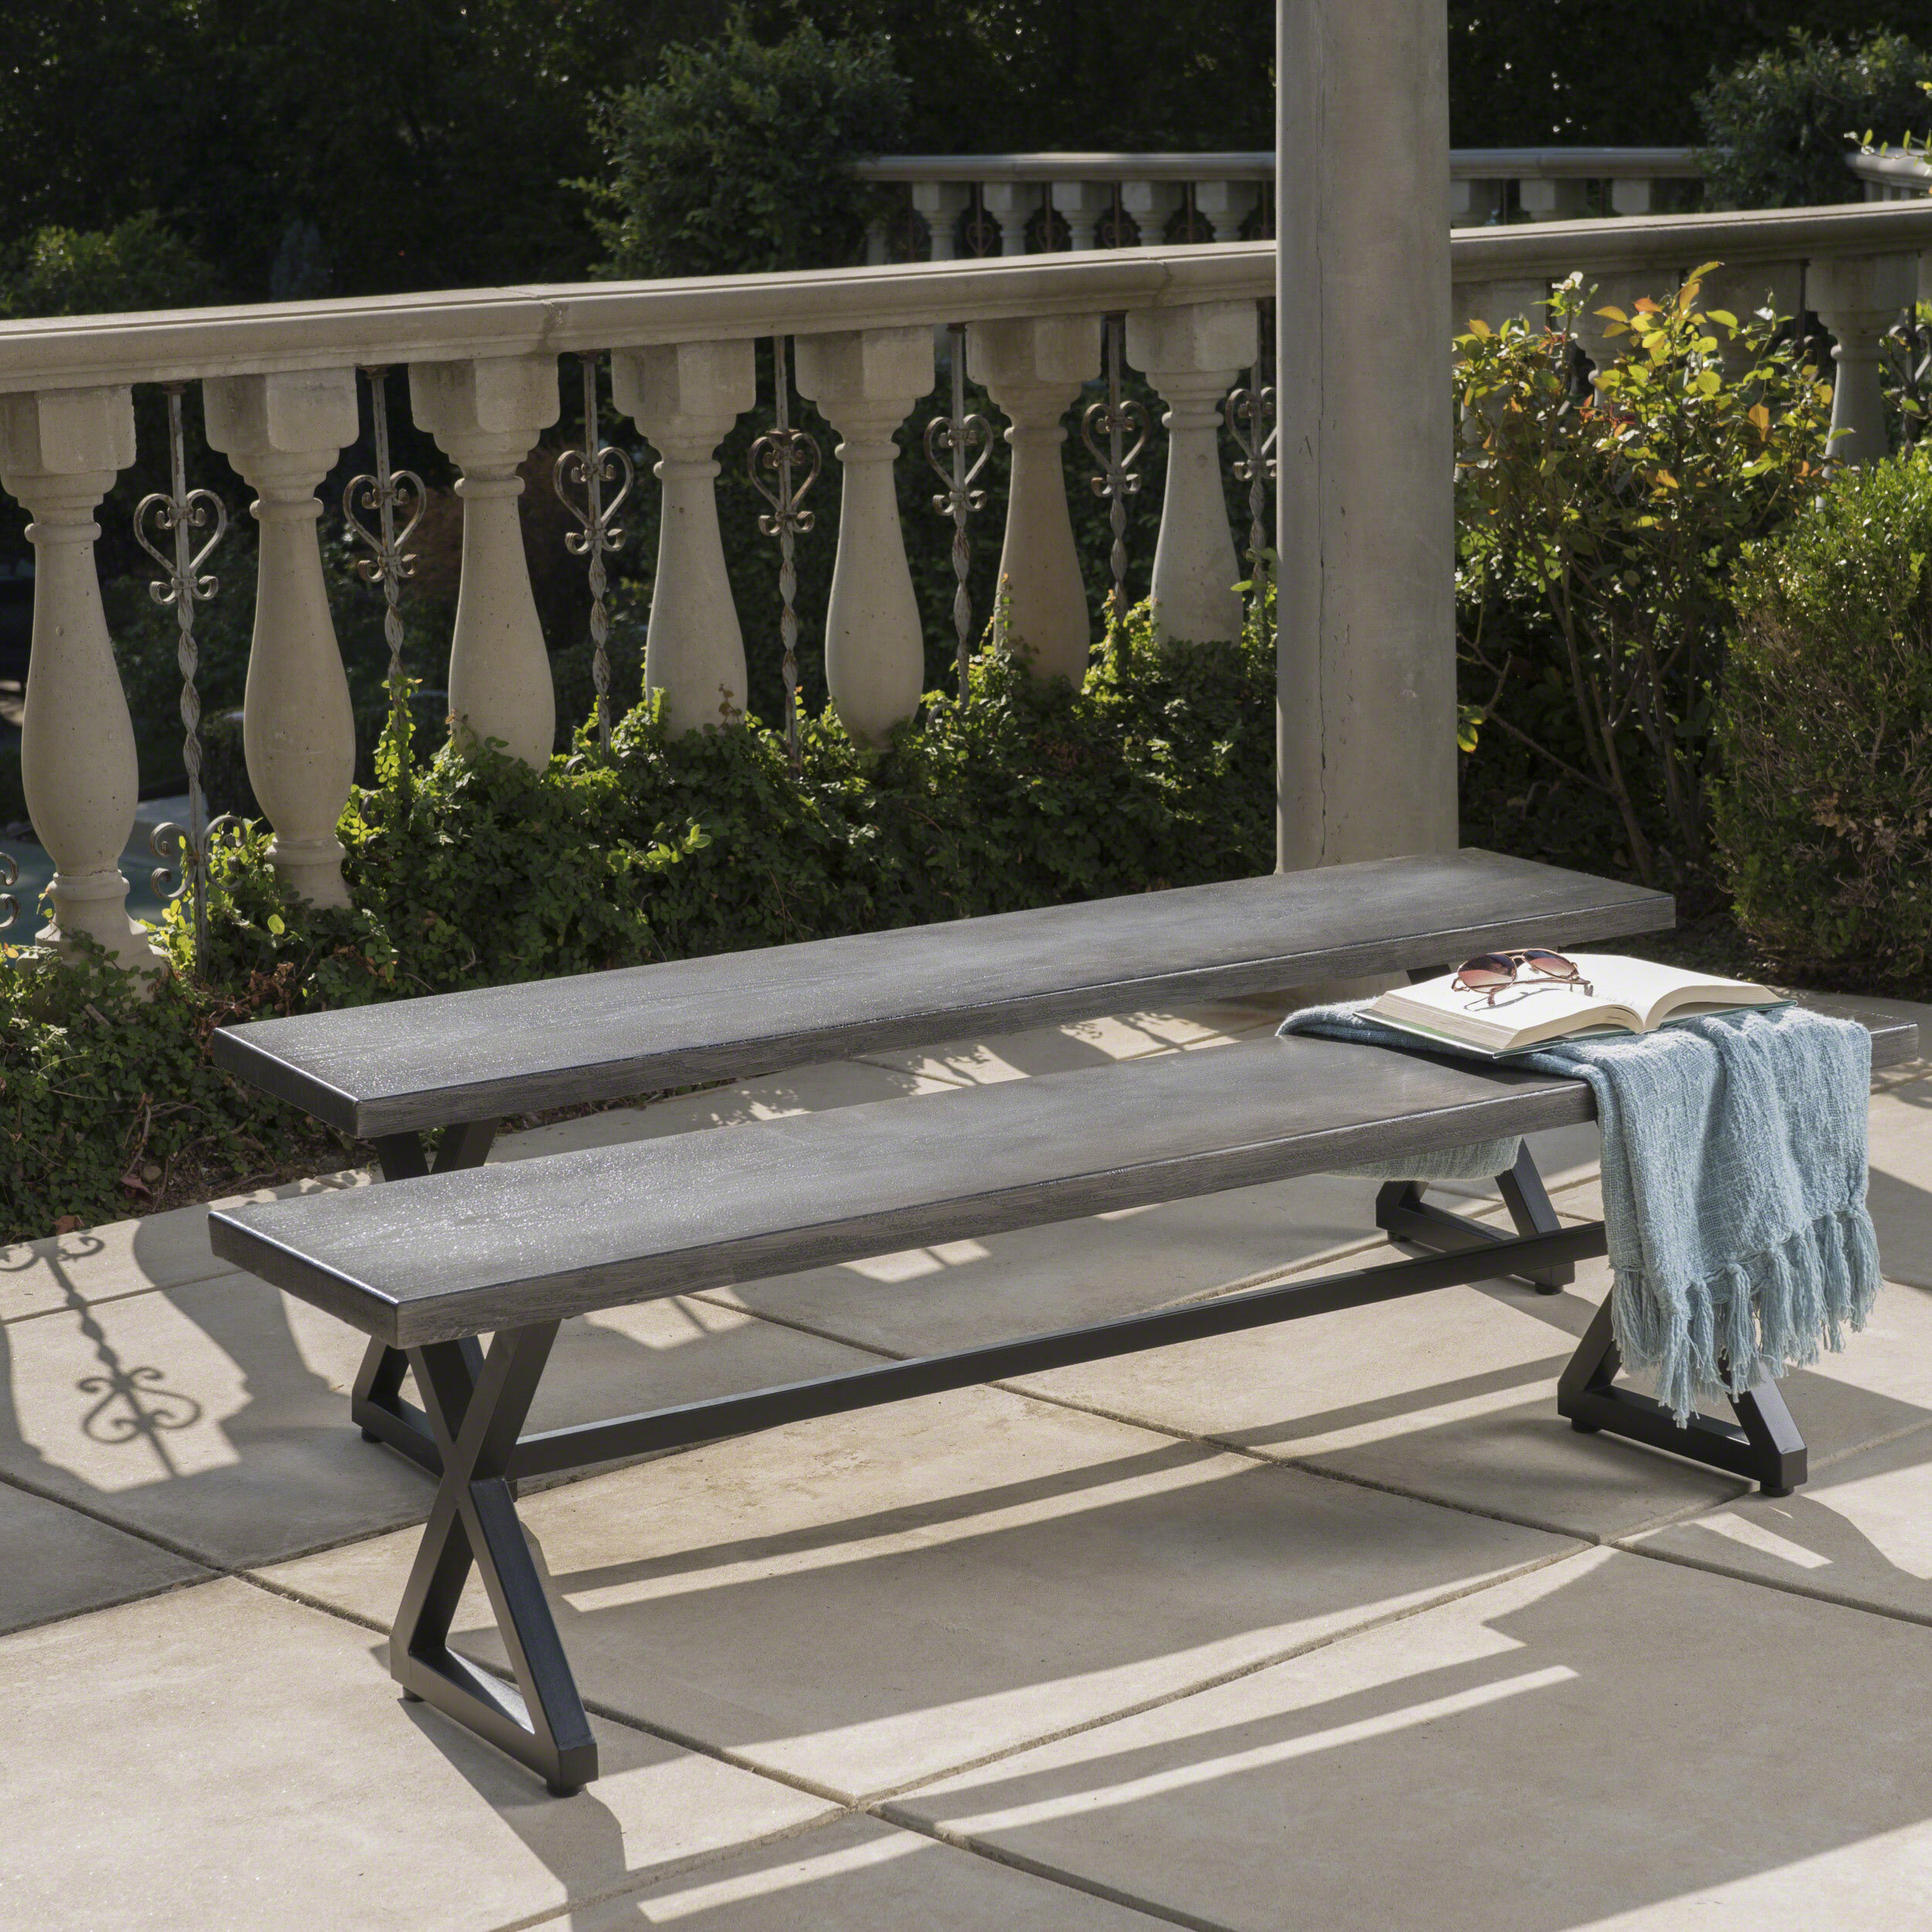 Pleasing Union Rustic Lal Outdoor Aluminum Picnic Bench Reviews Evergreenethics Interior Chair Design Evergreenethicsorg